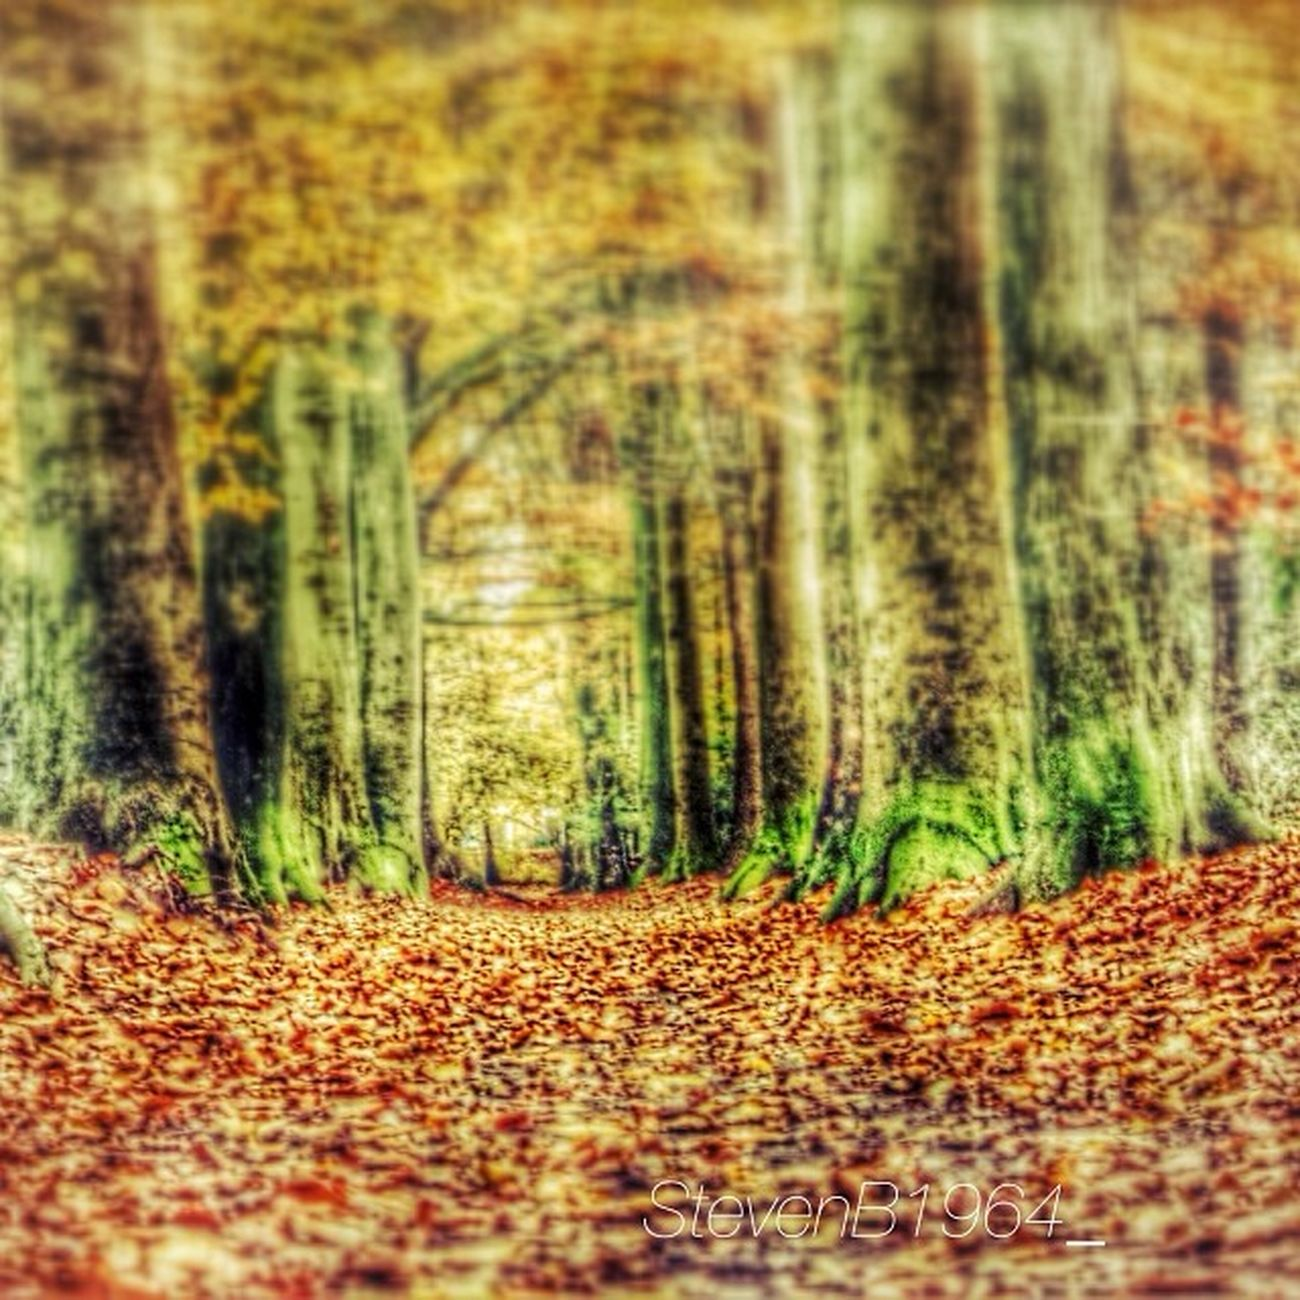 Last pictures of this fall. The worldfamous Oosterbos , eastforest. Worldfamous in Barneveld . As a child I used to play there with my friends. Fall Herfst herbst trees leaves